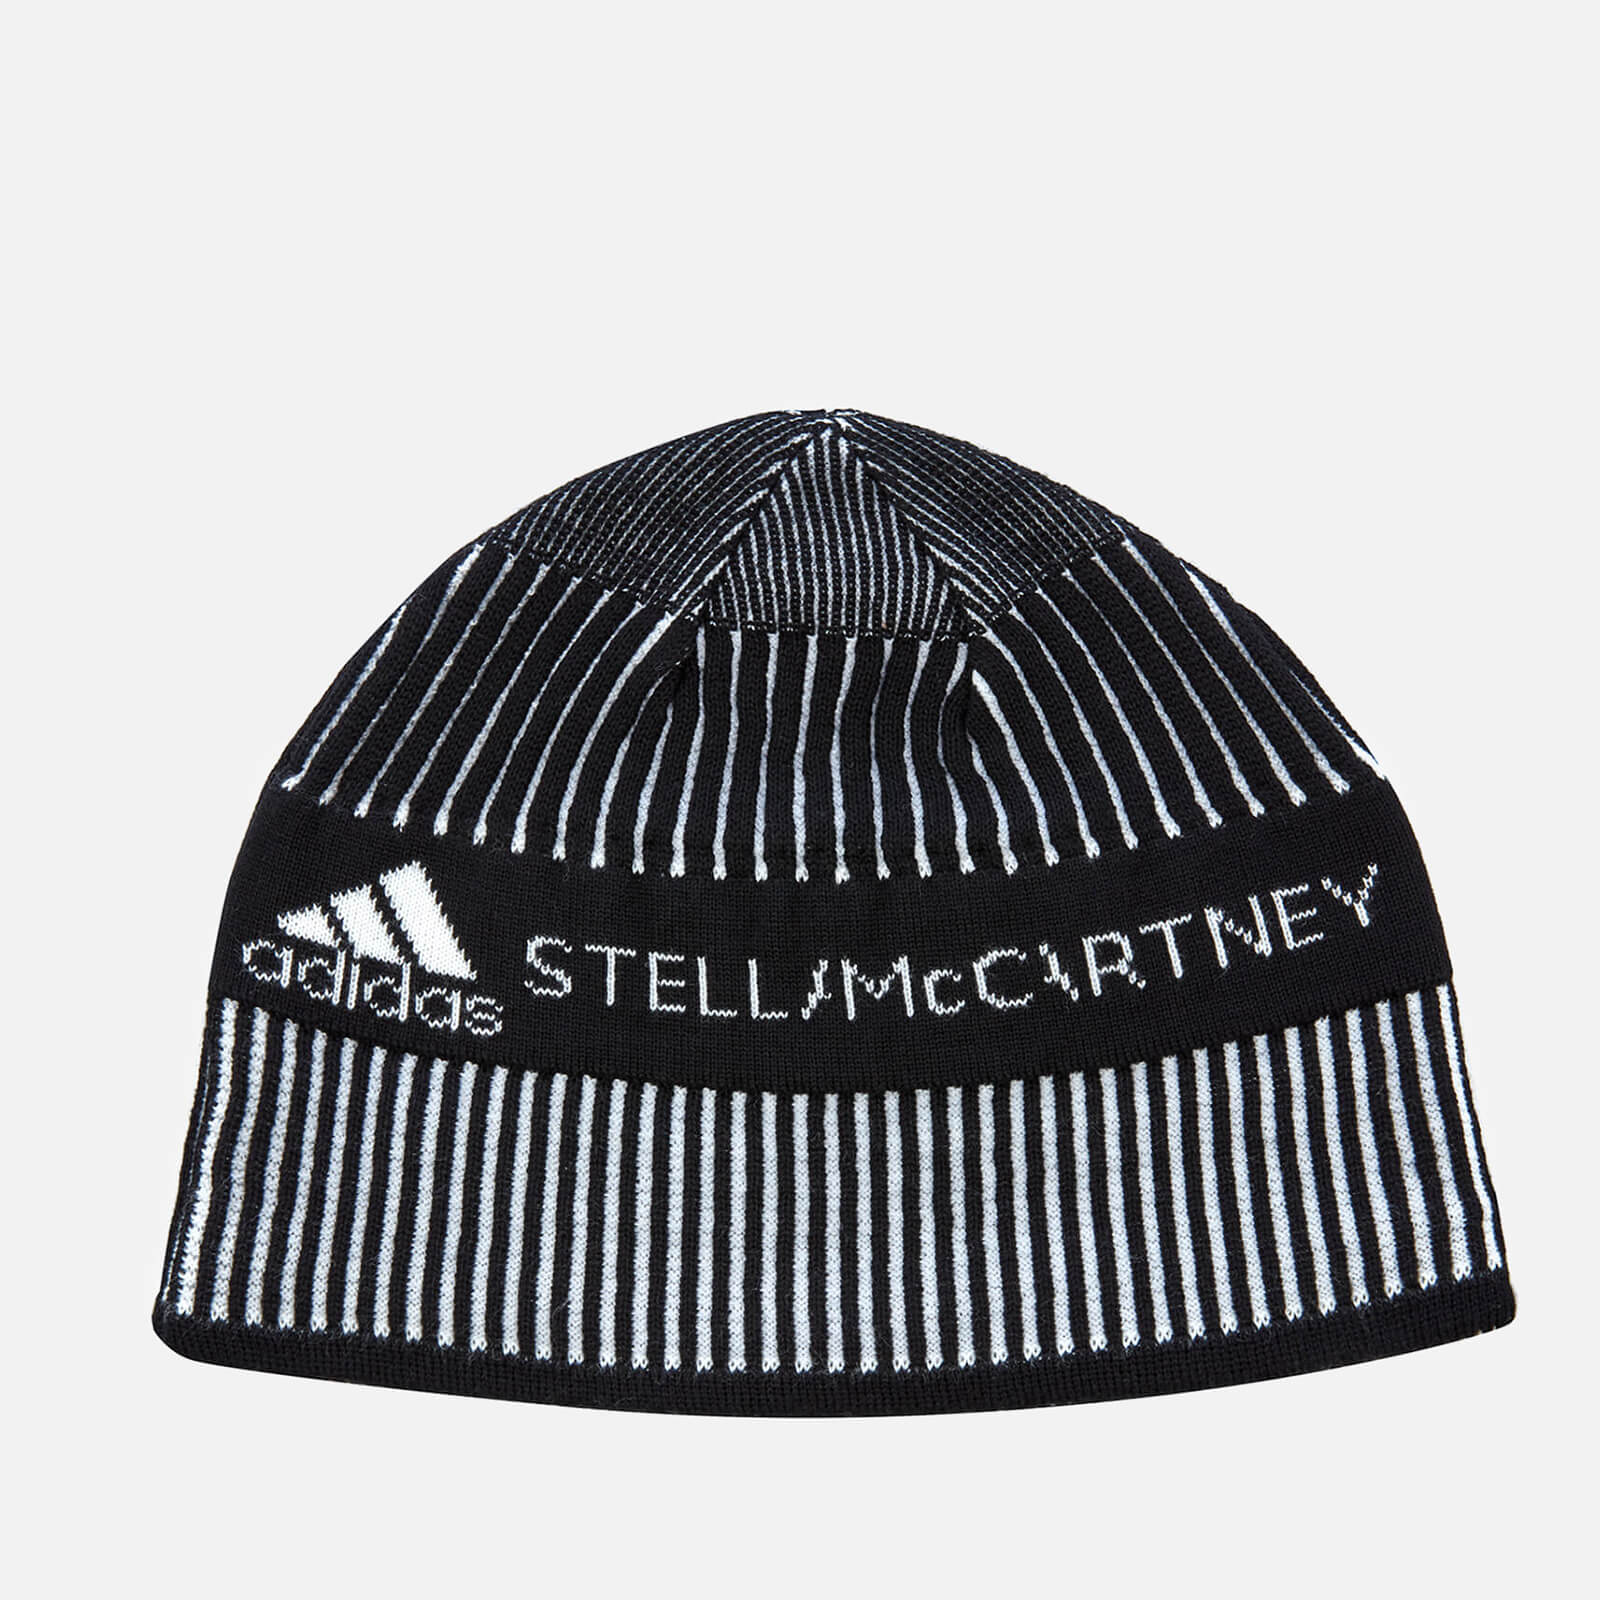 2b4e17bbed4b7 adidas by Stella McCartney Women s Run Beanie Hat - Black White - Free UK  Delivery over £50